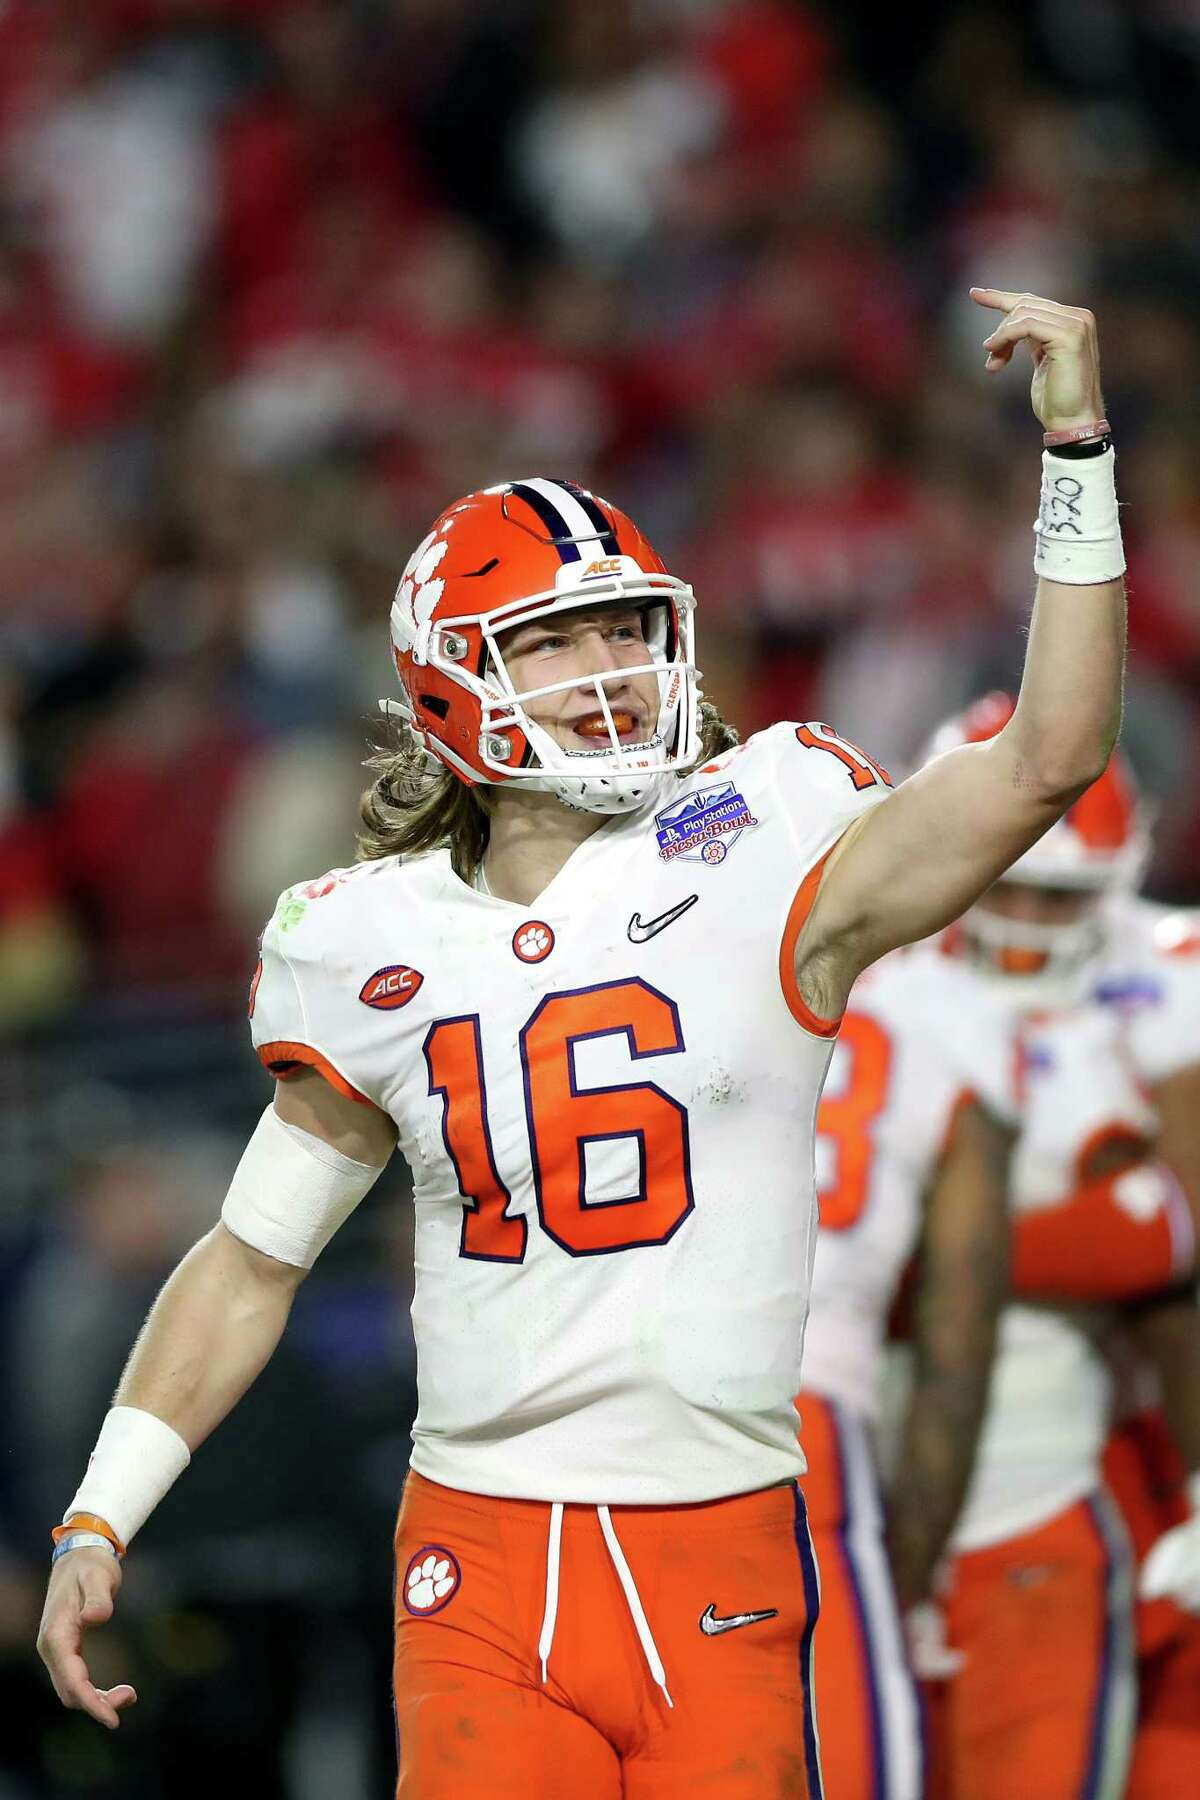 GLENDALE, ARIZONA - DECEMBER 28: Trevor Lawrence #16 of the Clemson Tigers celebrates his 34-yard touchdown pass to Travis Etienne (not pictured) against the Ohio State Buckeyes in the second half during the College Football Playoff Semifinal at the PlayStation Fiesta Bowl at State Farm Stadium on December 28, 2019 in Glendale, Arizona. (Photo by Matthew Stockman/Getty Images)